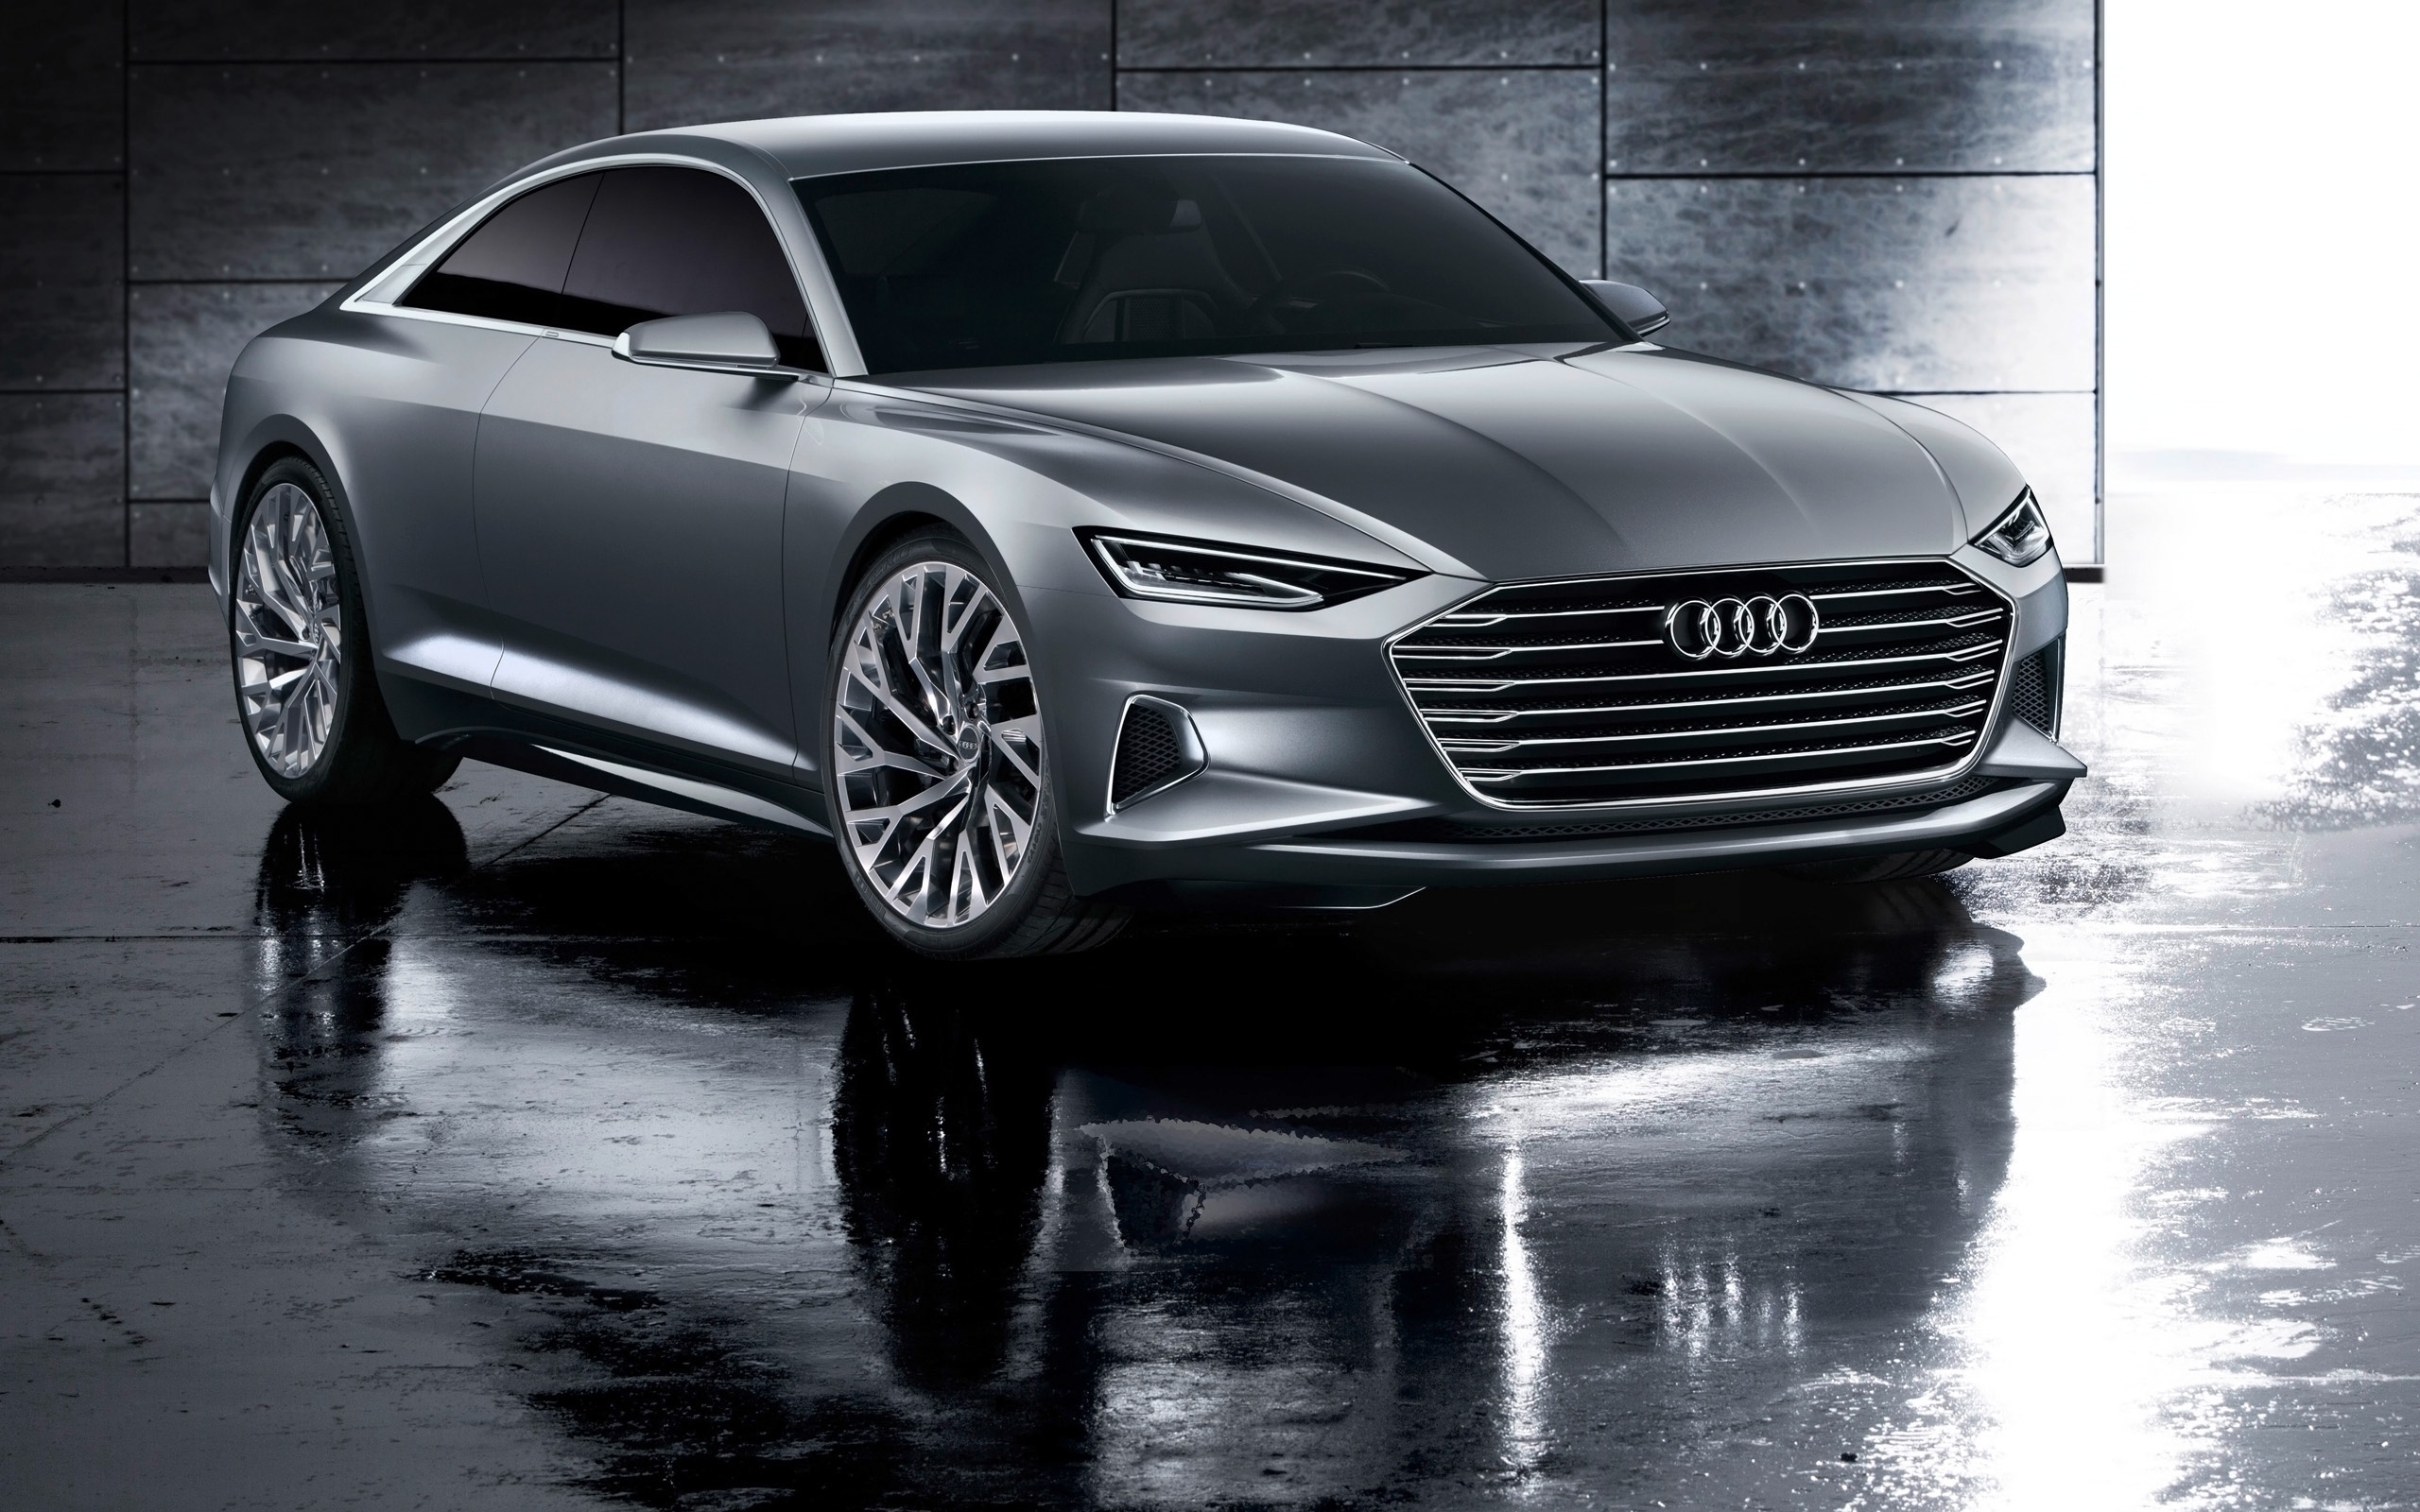 2014 Audi Prologue Concept 279.82 Kb